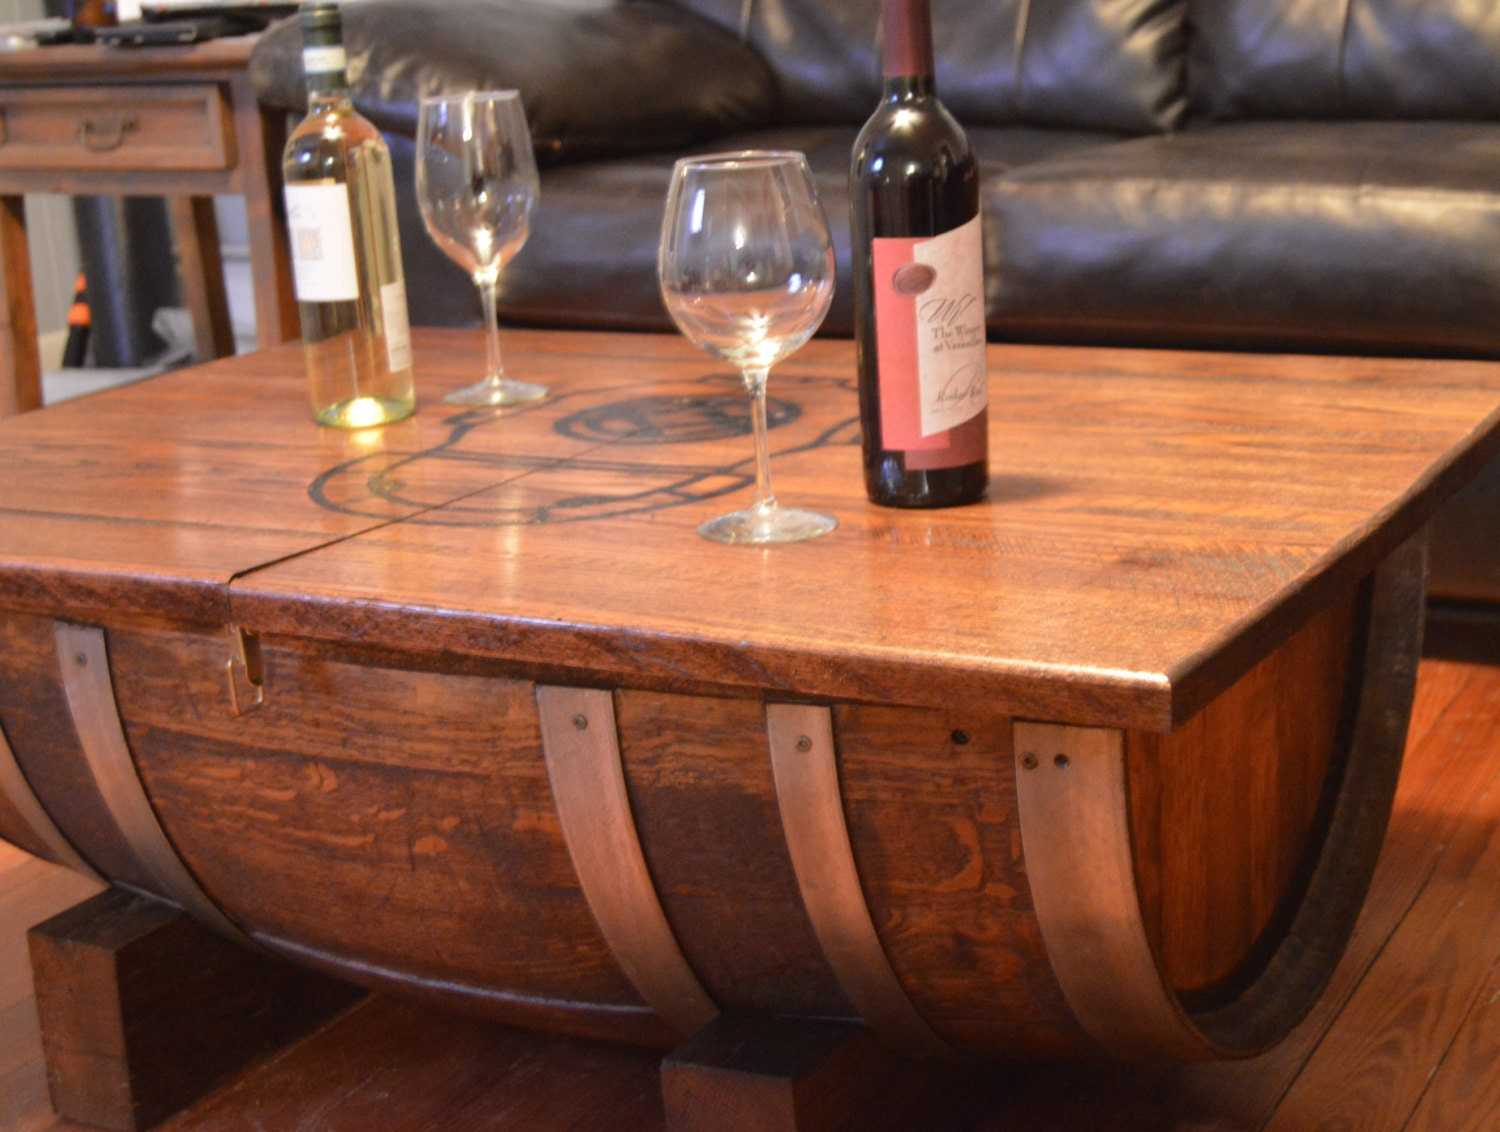 Wine Barrel Coffee Table By Planksdesign On Etsy